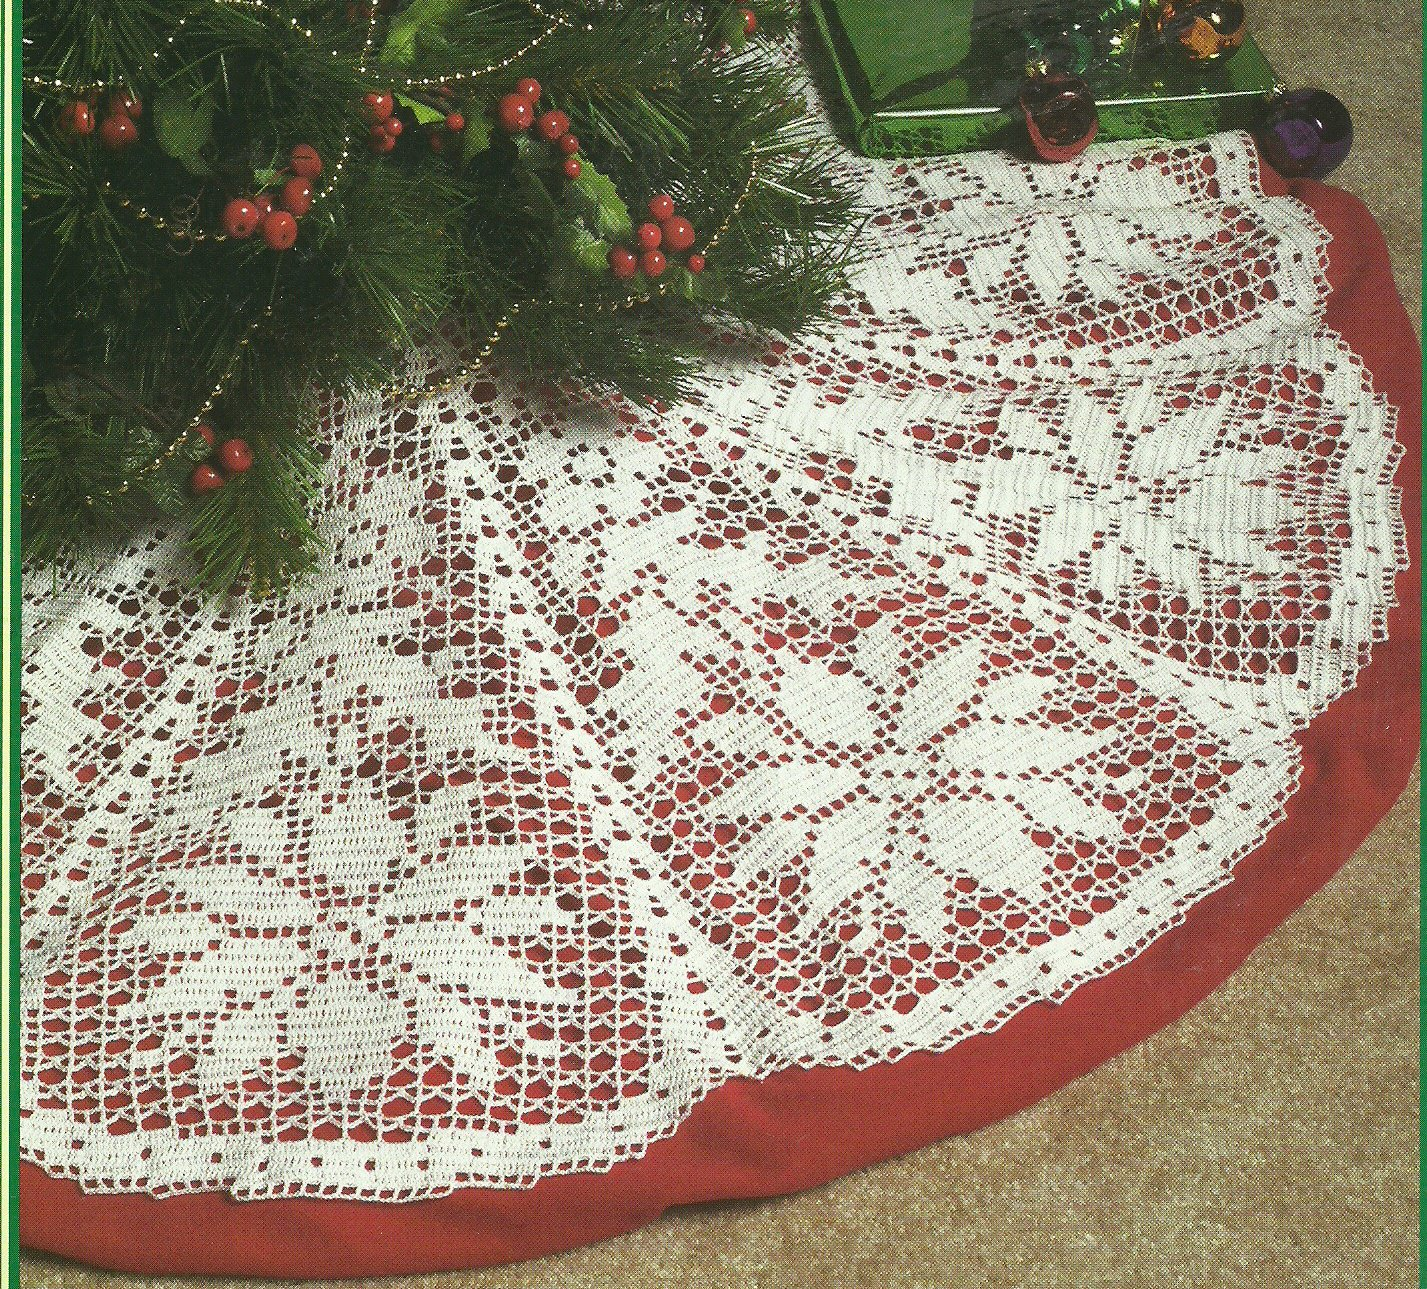 White Christmas Collection - Poinsettia Tree Skirt - Filet Crochet